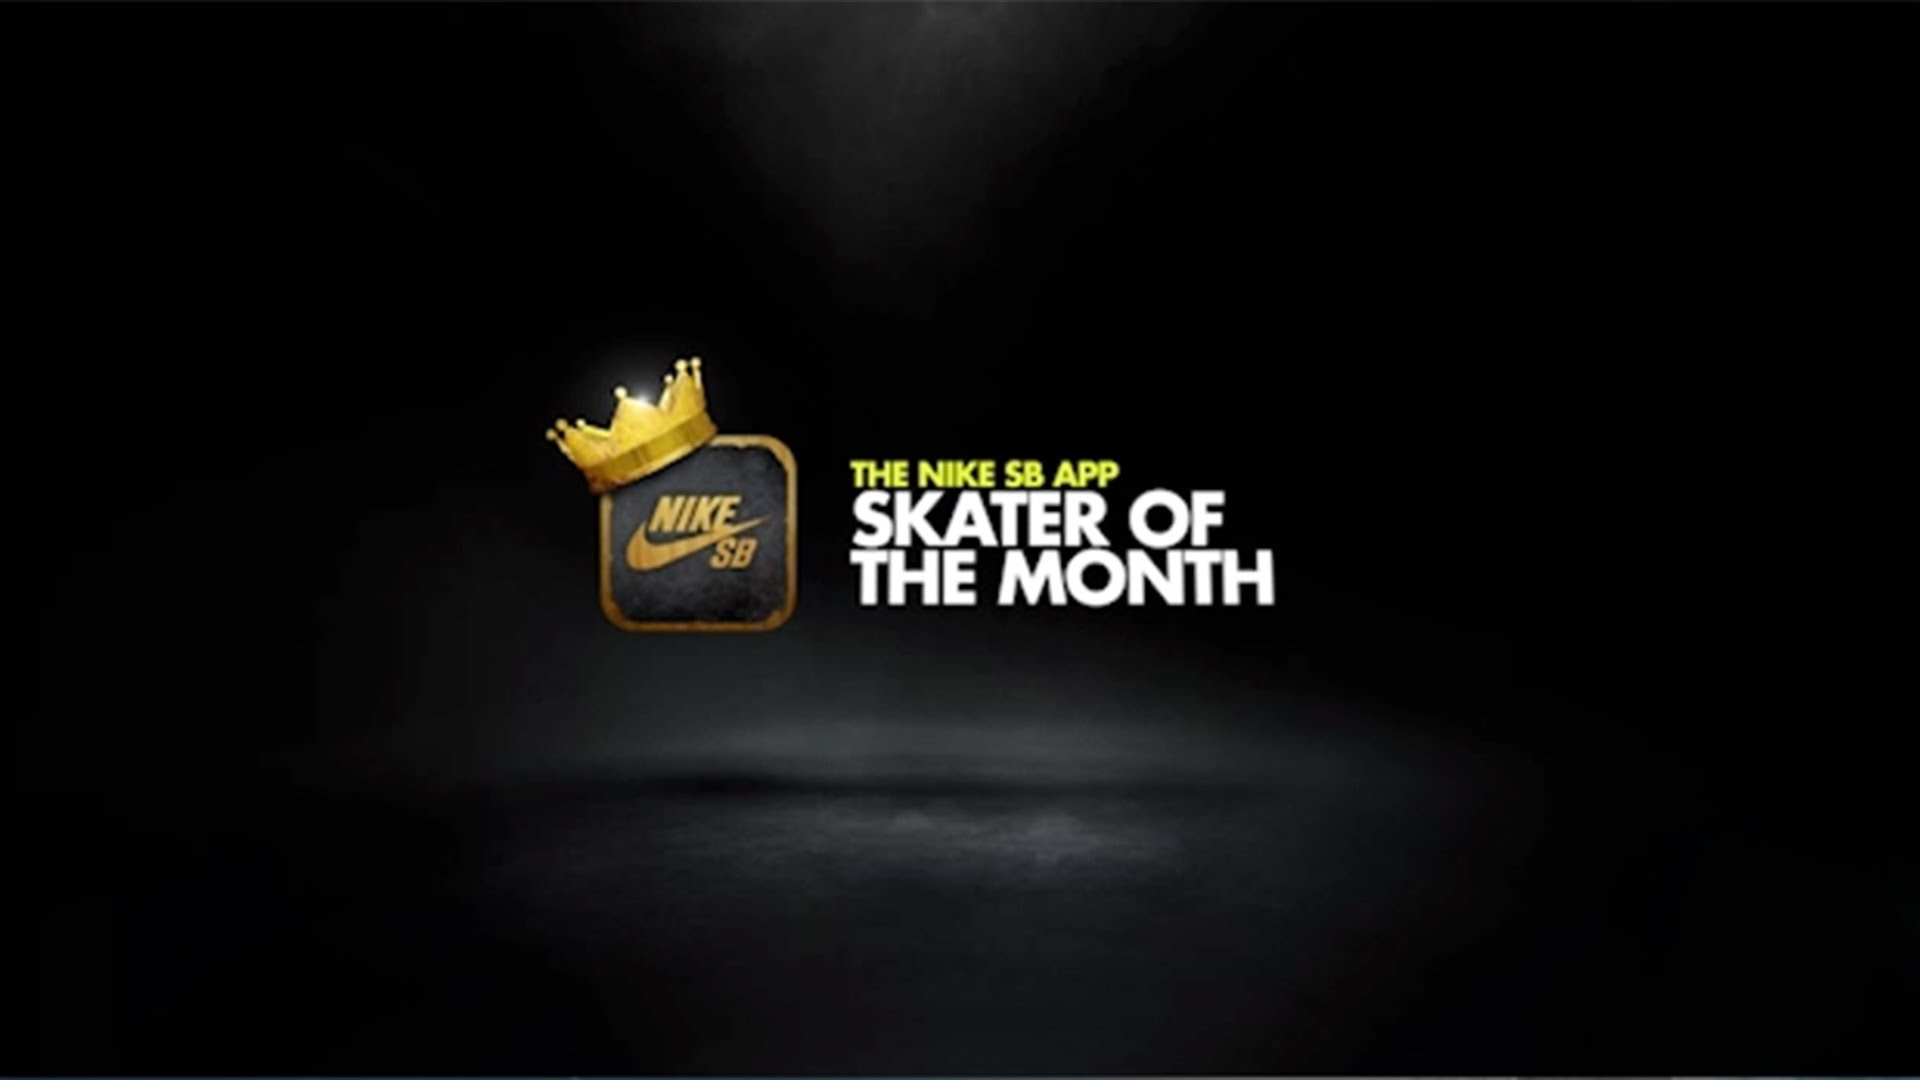 The Nike SB app Skater of the Month – Mar 2014